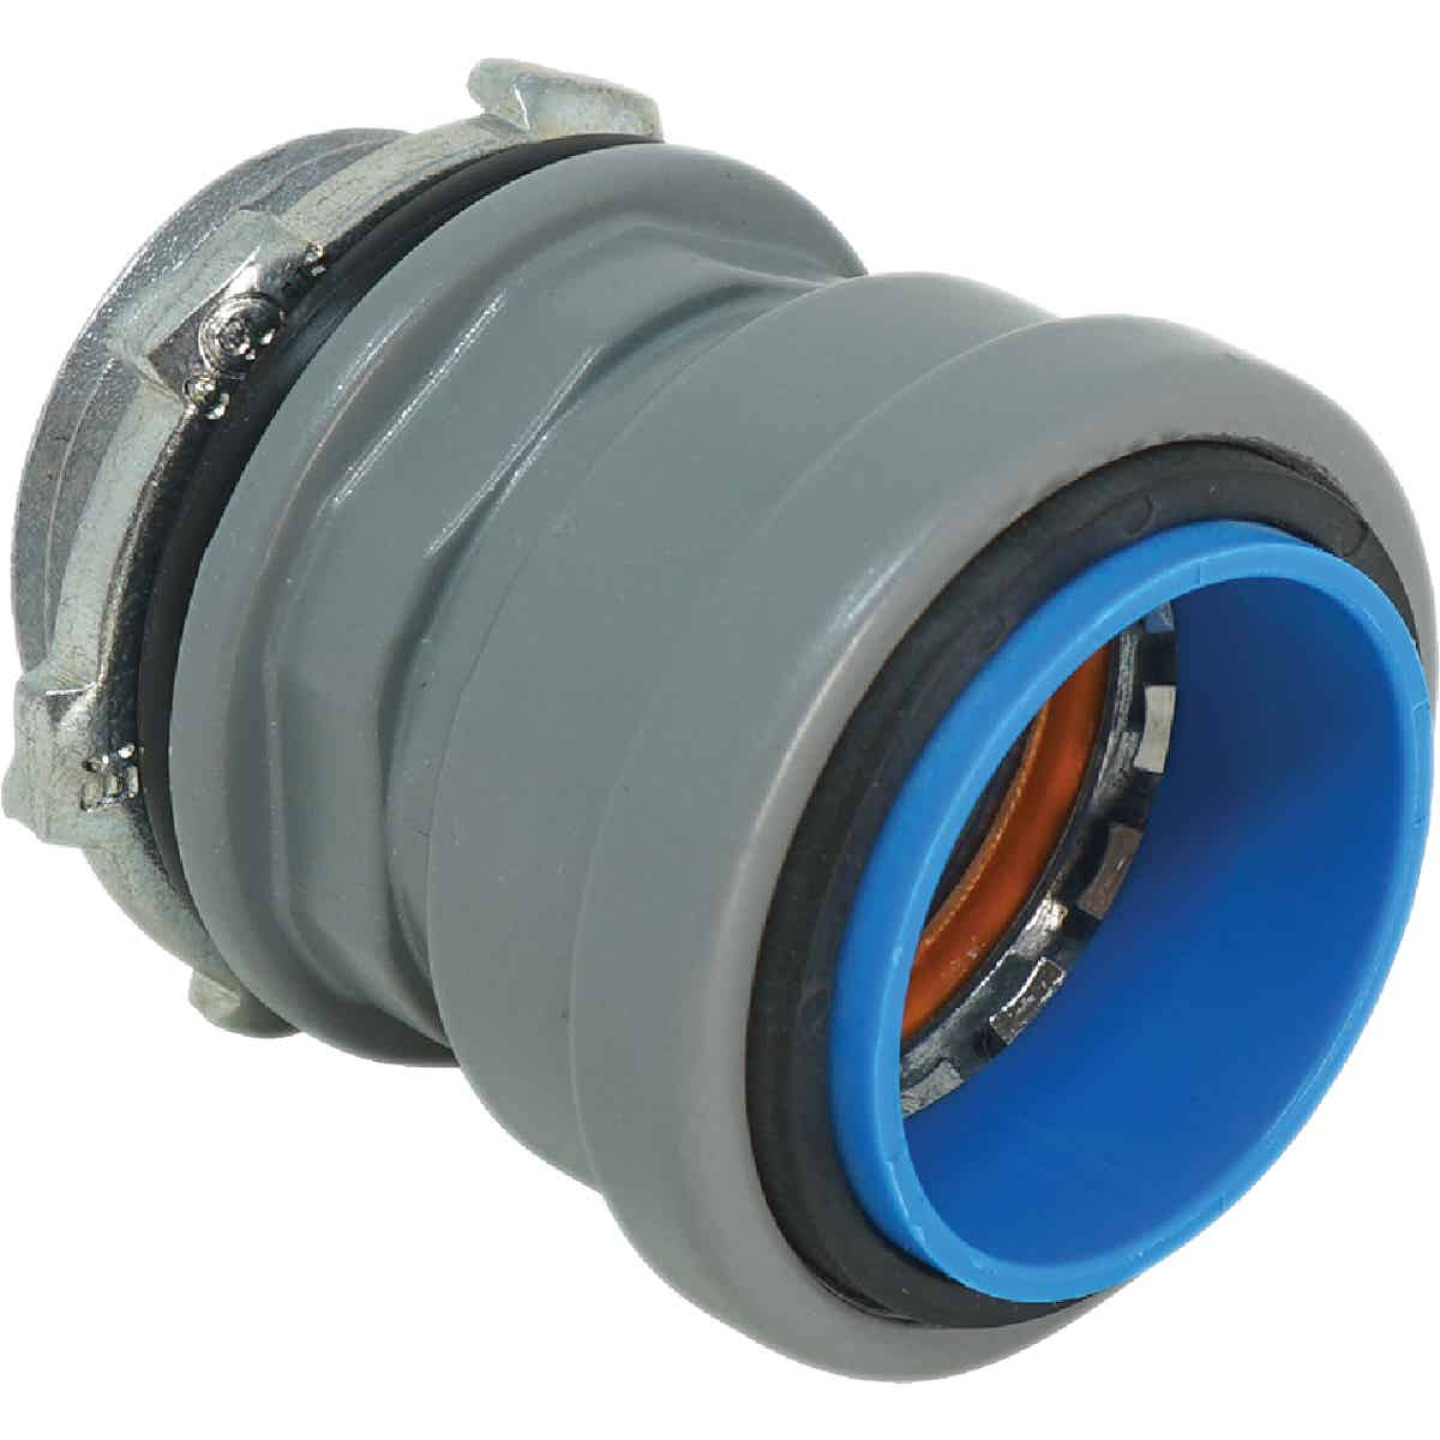 Southwire SimPush 3/4 In. EMT Push-To-Install Watertight Box Connector Image 1